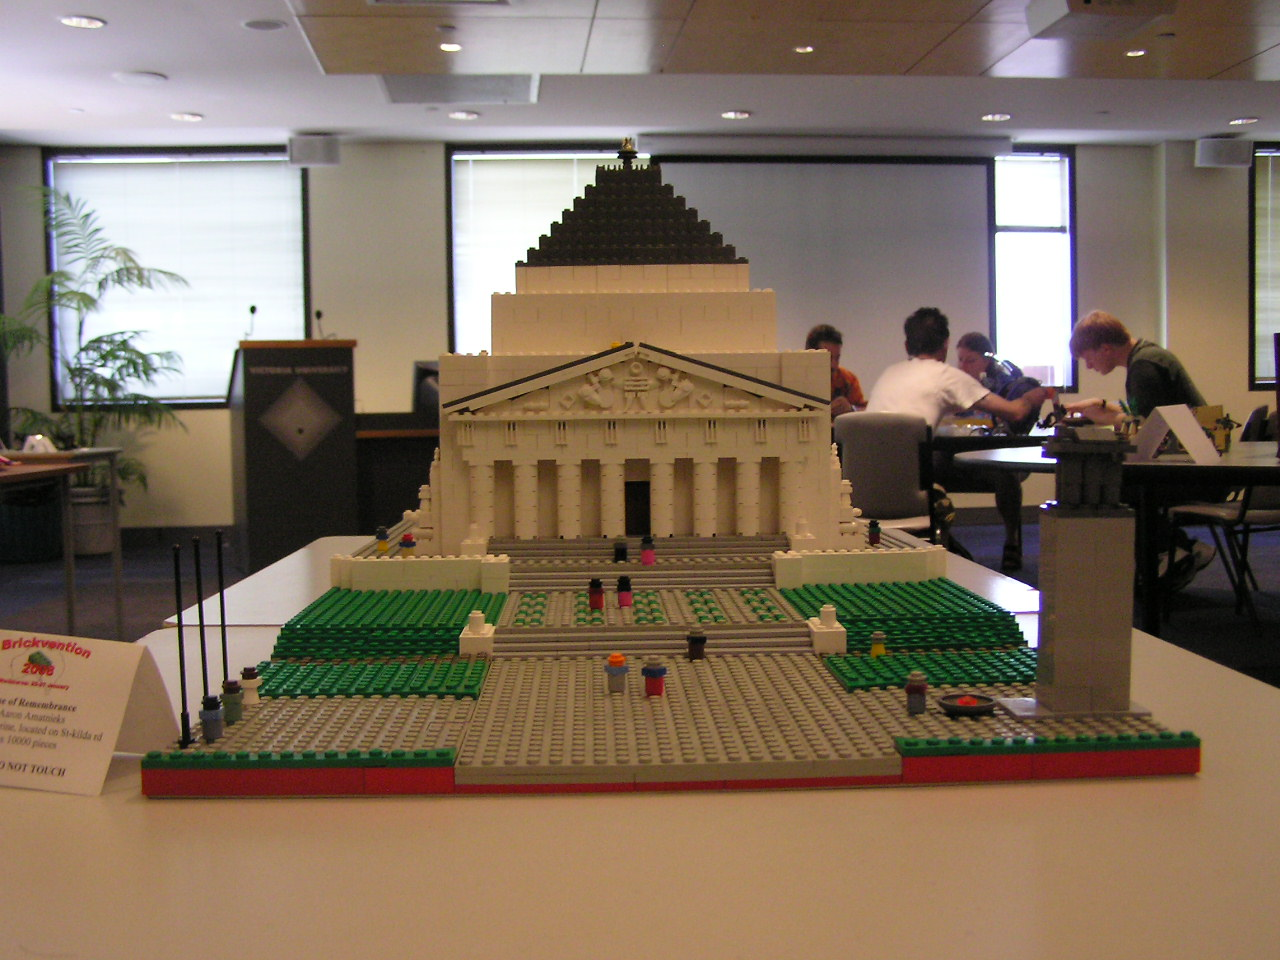 brickvention_085.jpg